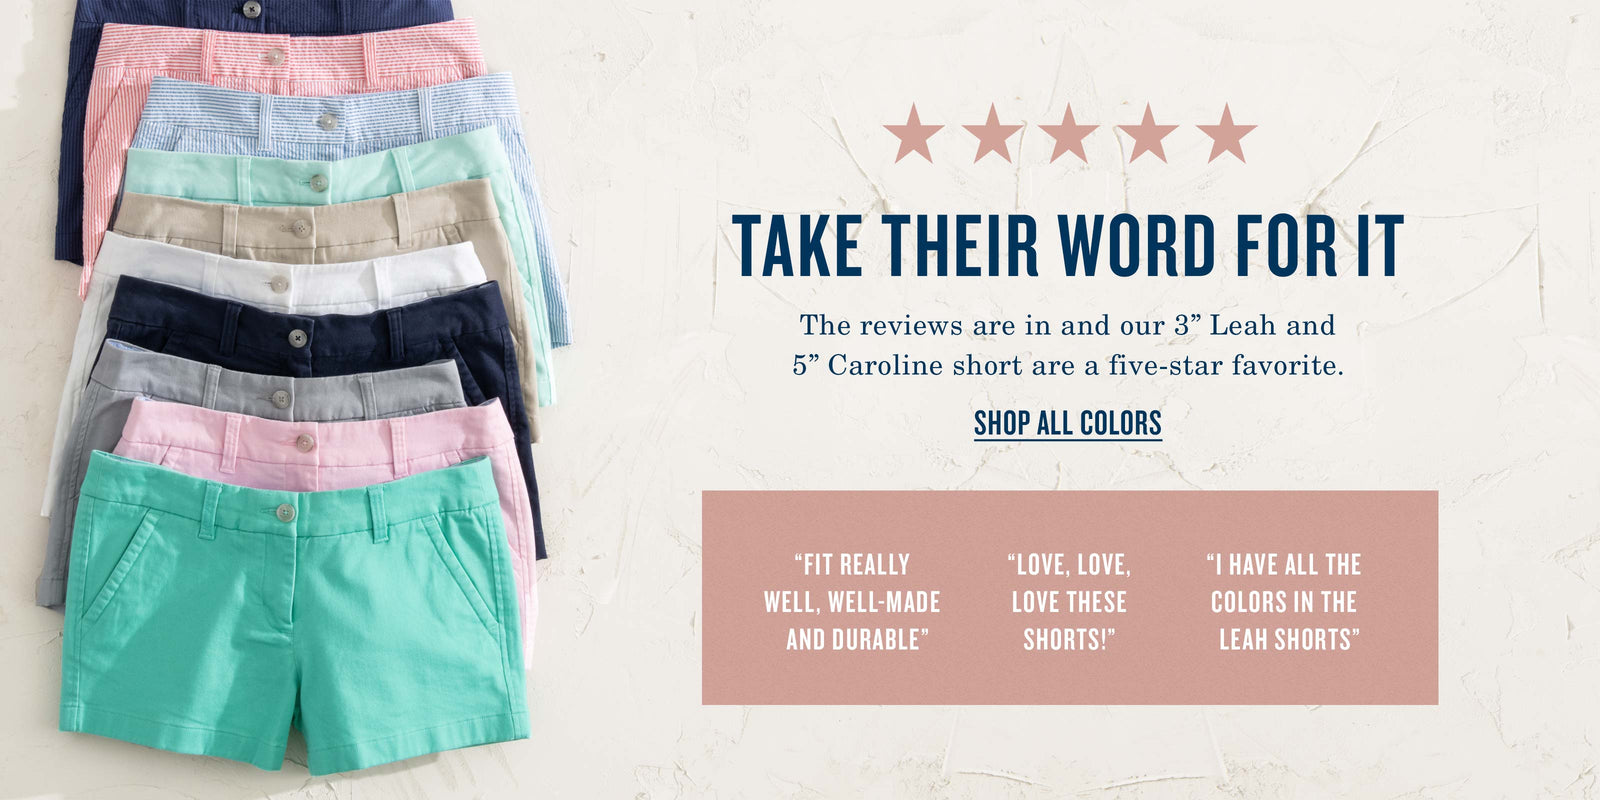 631c0f5a71 Southern Tide: Southern Lifestyle Casual Clothes for Men, Women & Kids